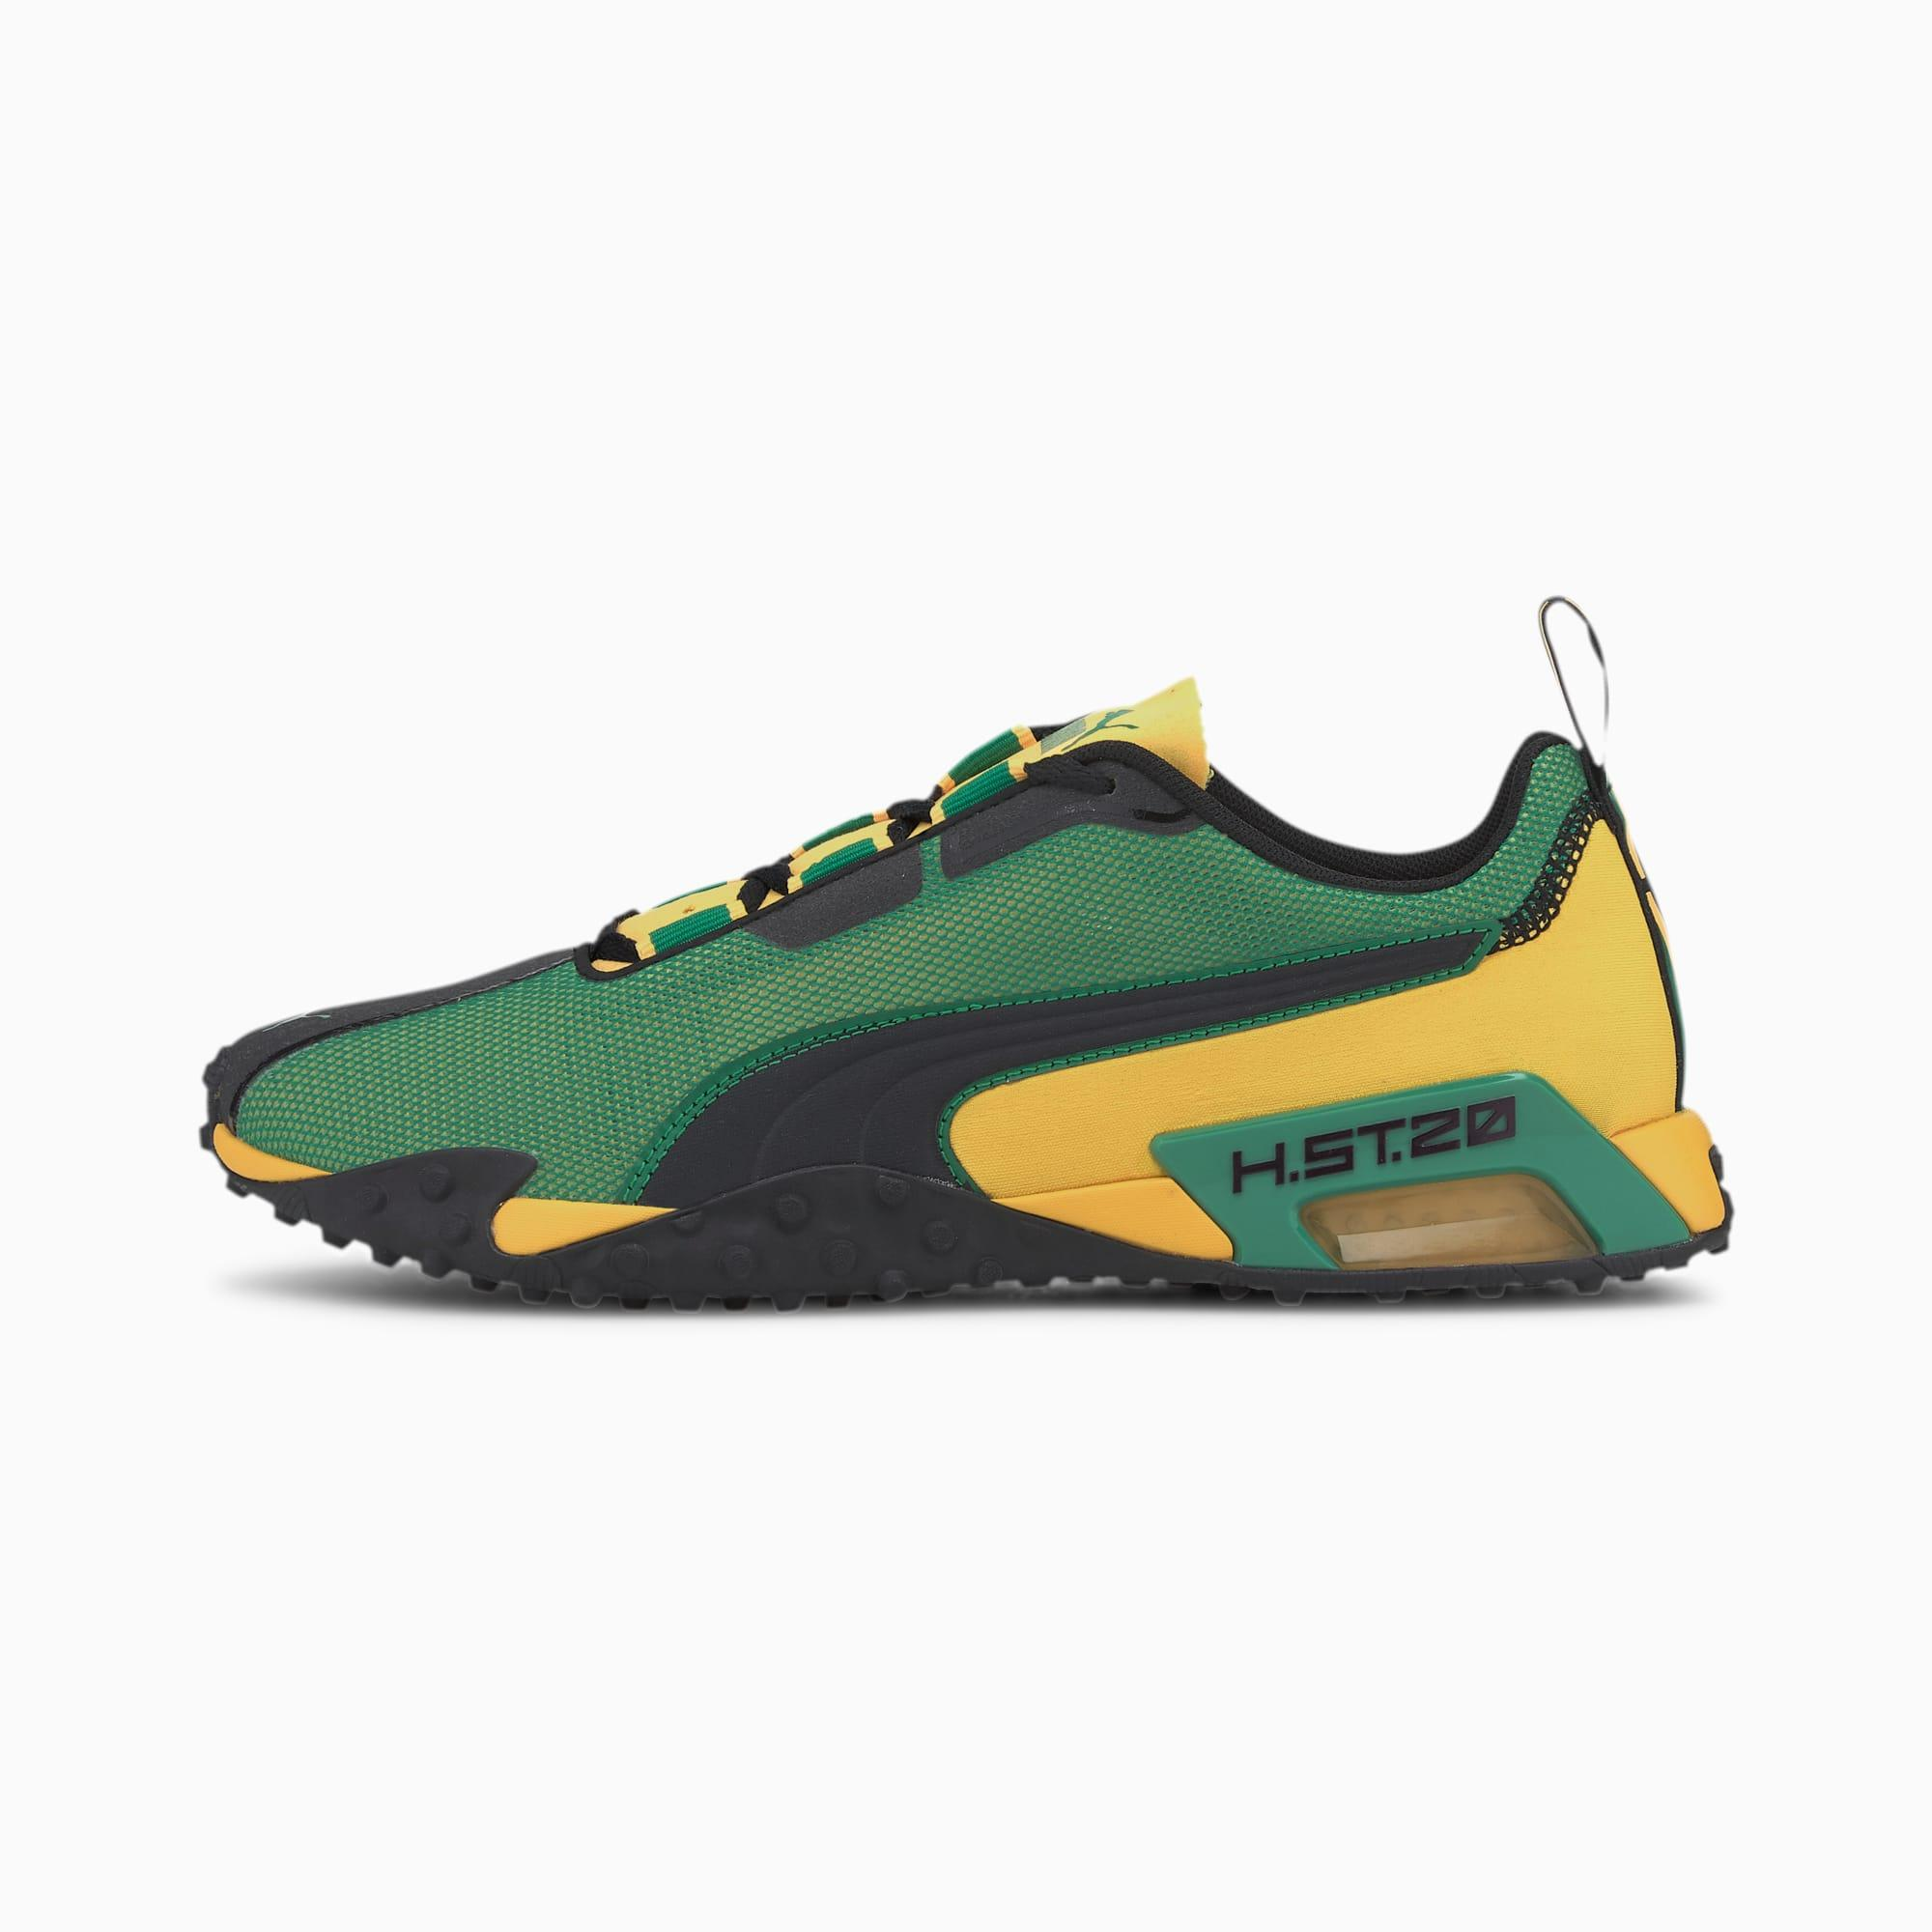 PUMA Rubber H.st.20 Jamaica Lqdcell Training Shoes in Ultra Yellow ...